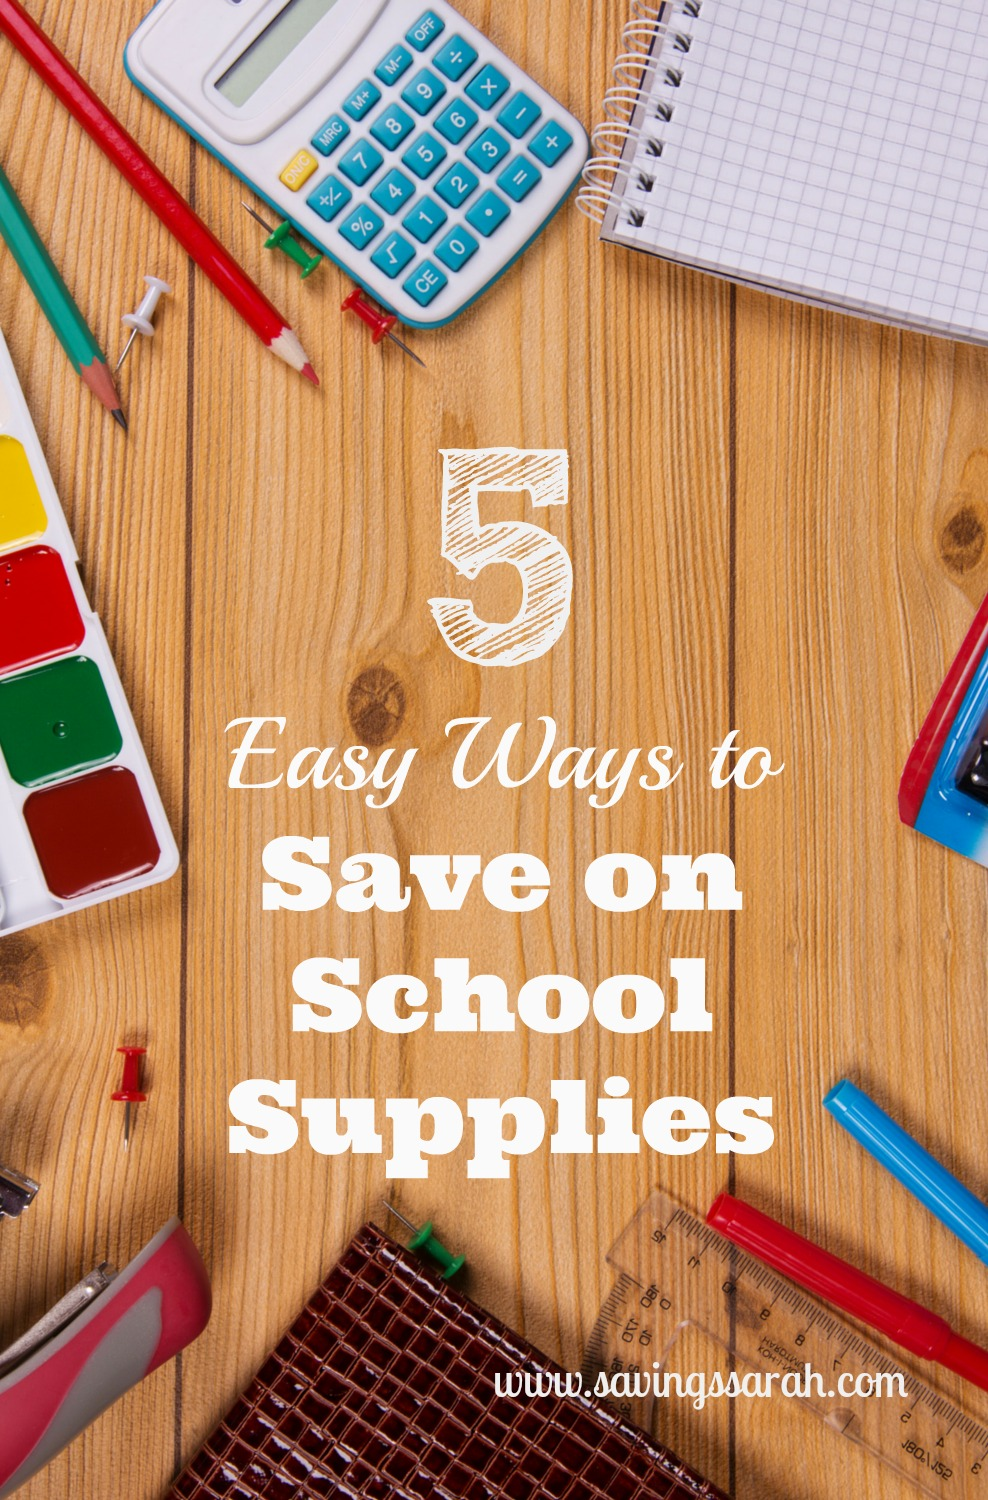 5 Easy Ways to Save on School Supplies